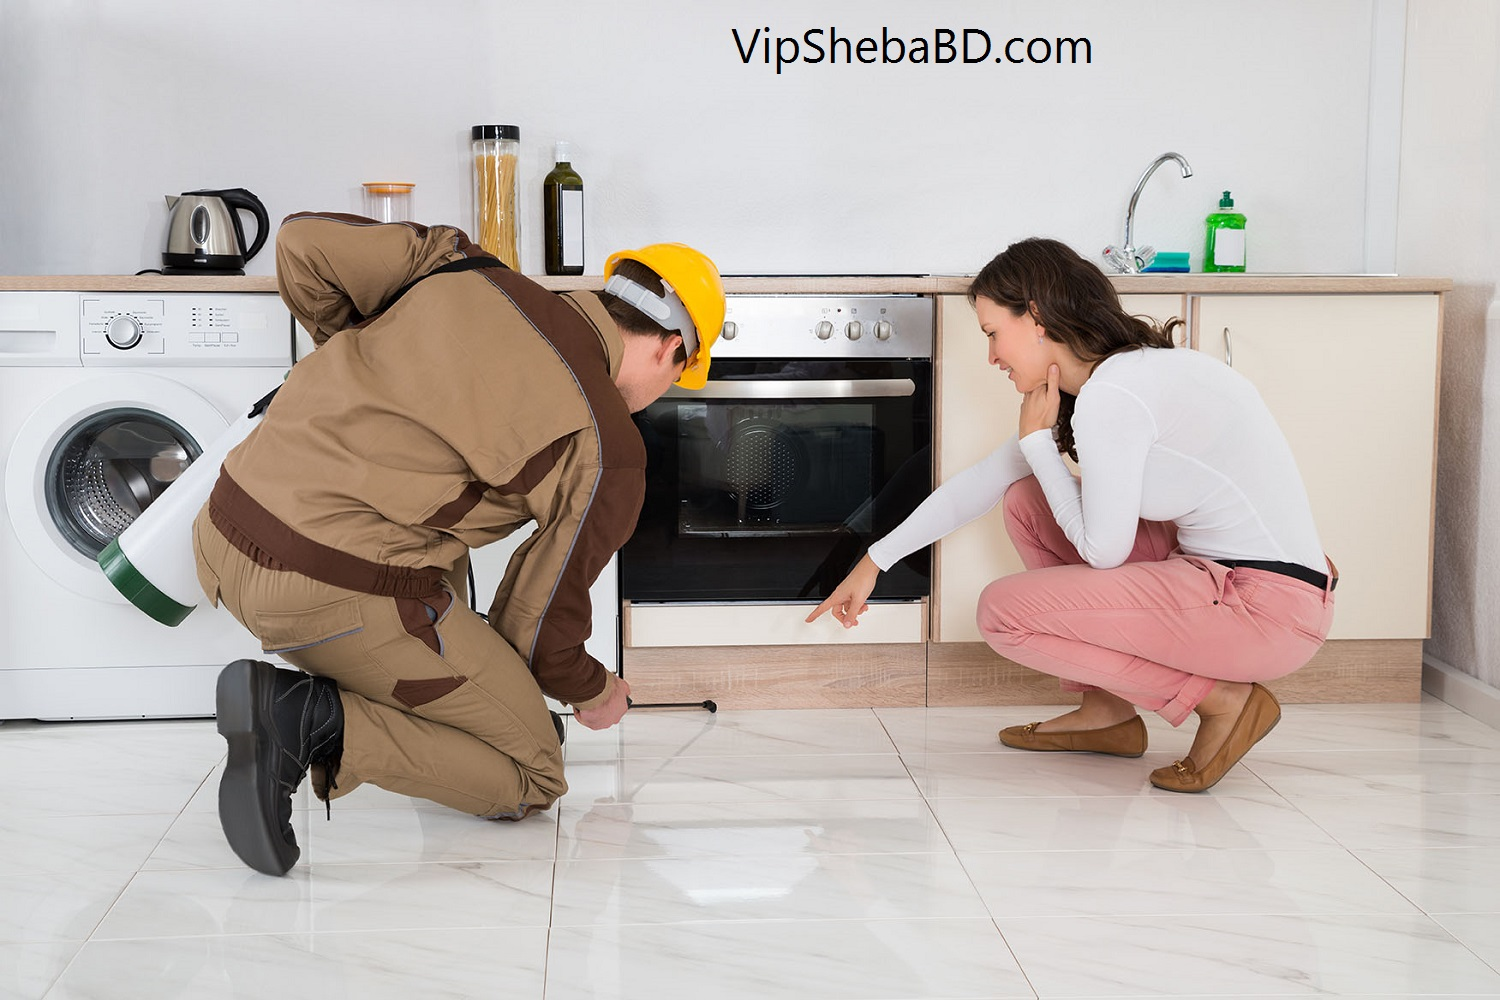 House pest control service in Dhaka city